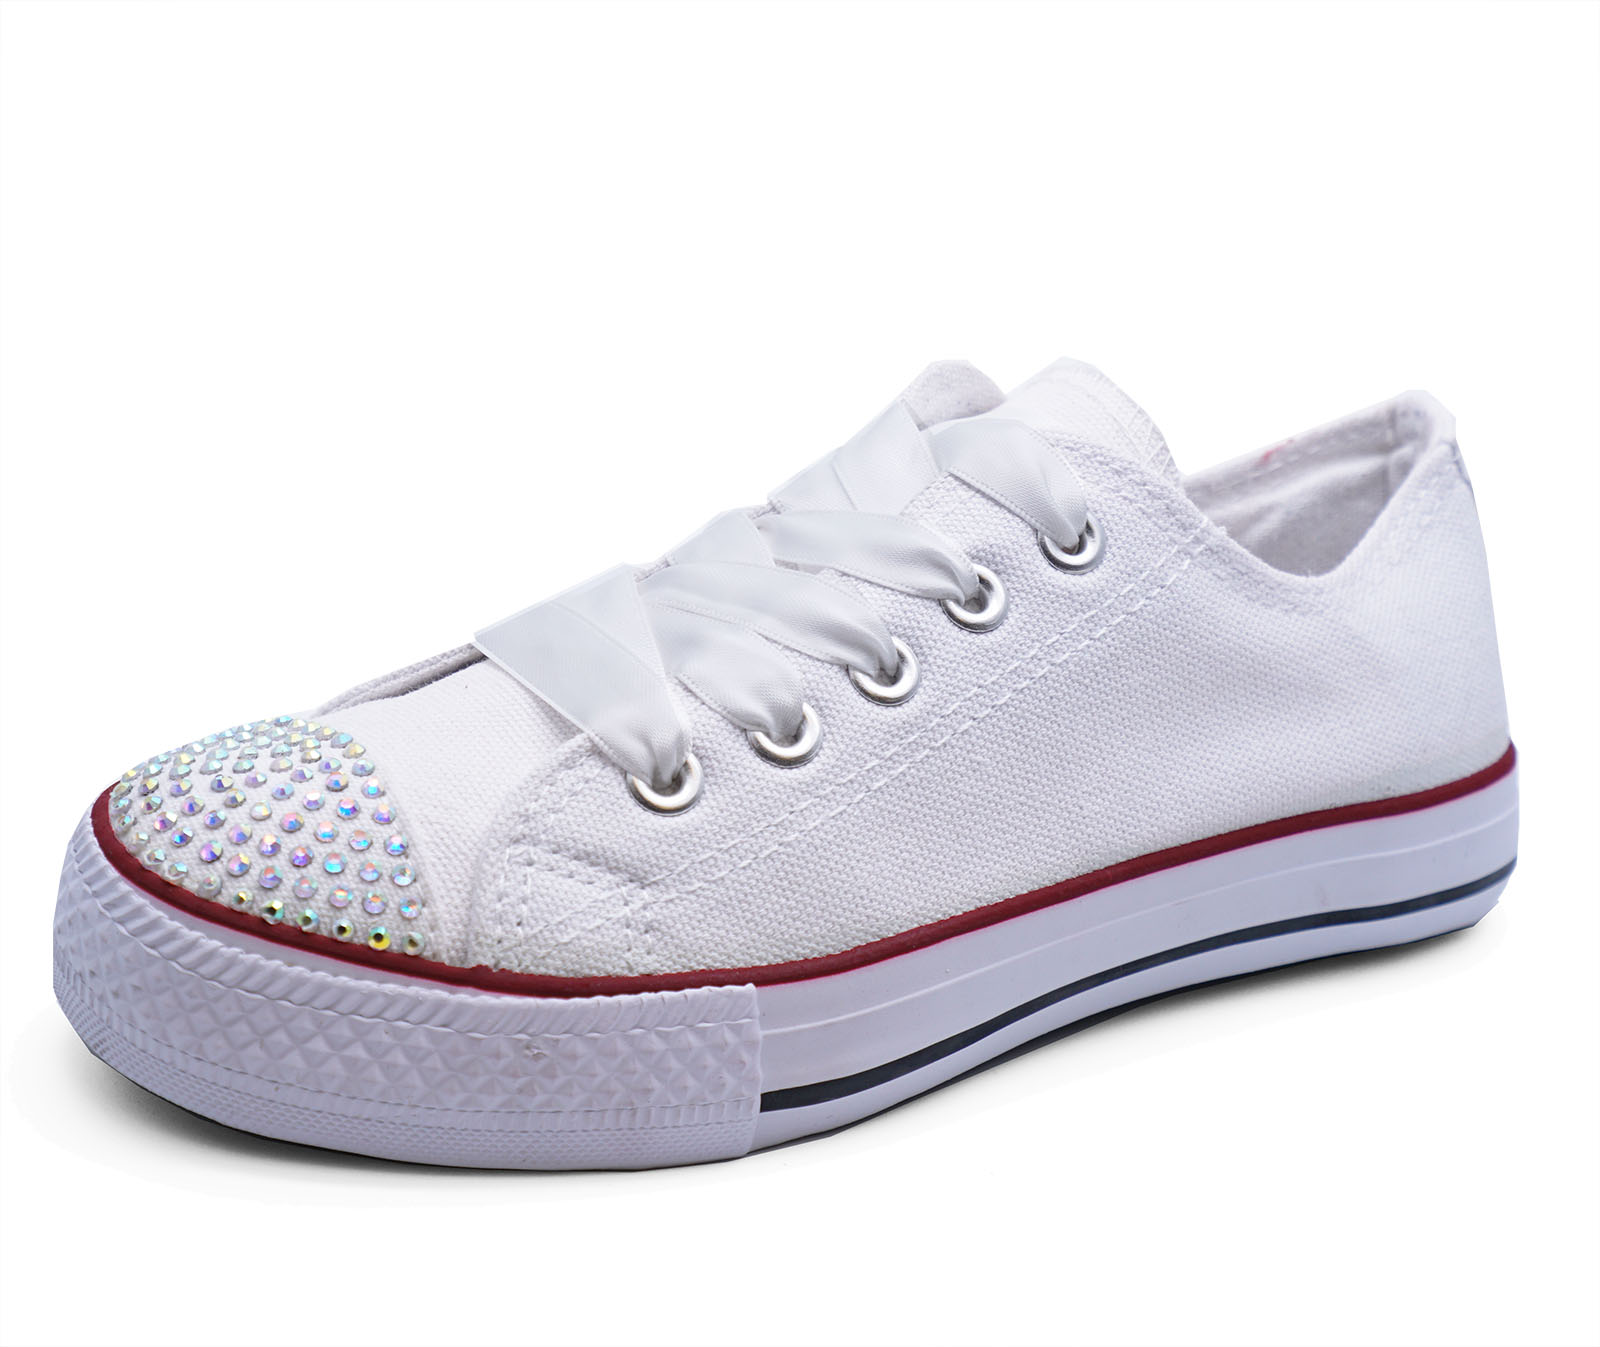 Find wholesale kids canvas shoes online from China kids canvas shoes wholesalers and dropshippers. DHgate helps you get high quality discount kids canvas shoes at bulk prices. ajaykumarchejarla.ml provides kids canvas shoes items from China top selected Athletic & Outdoor, Shoes, Baby, Kids & Maternity suppliers at wholesale prices with worldwide.